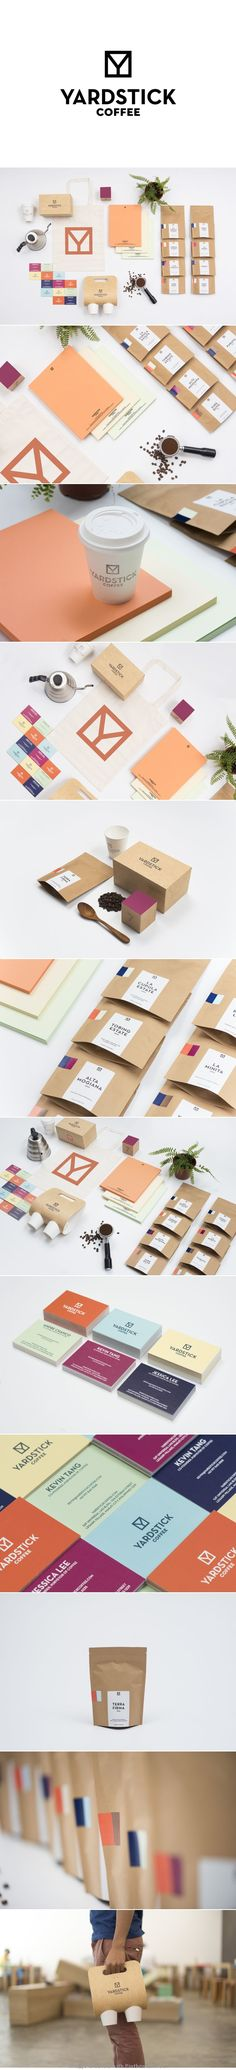 Yardstick Coffee brand logo label corporate branding visual graphic identity kraft paper design business card label packaging box colors print packaging nature